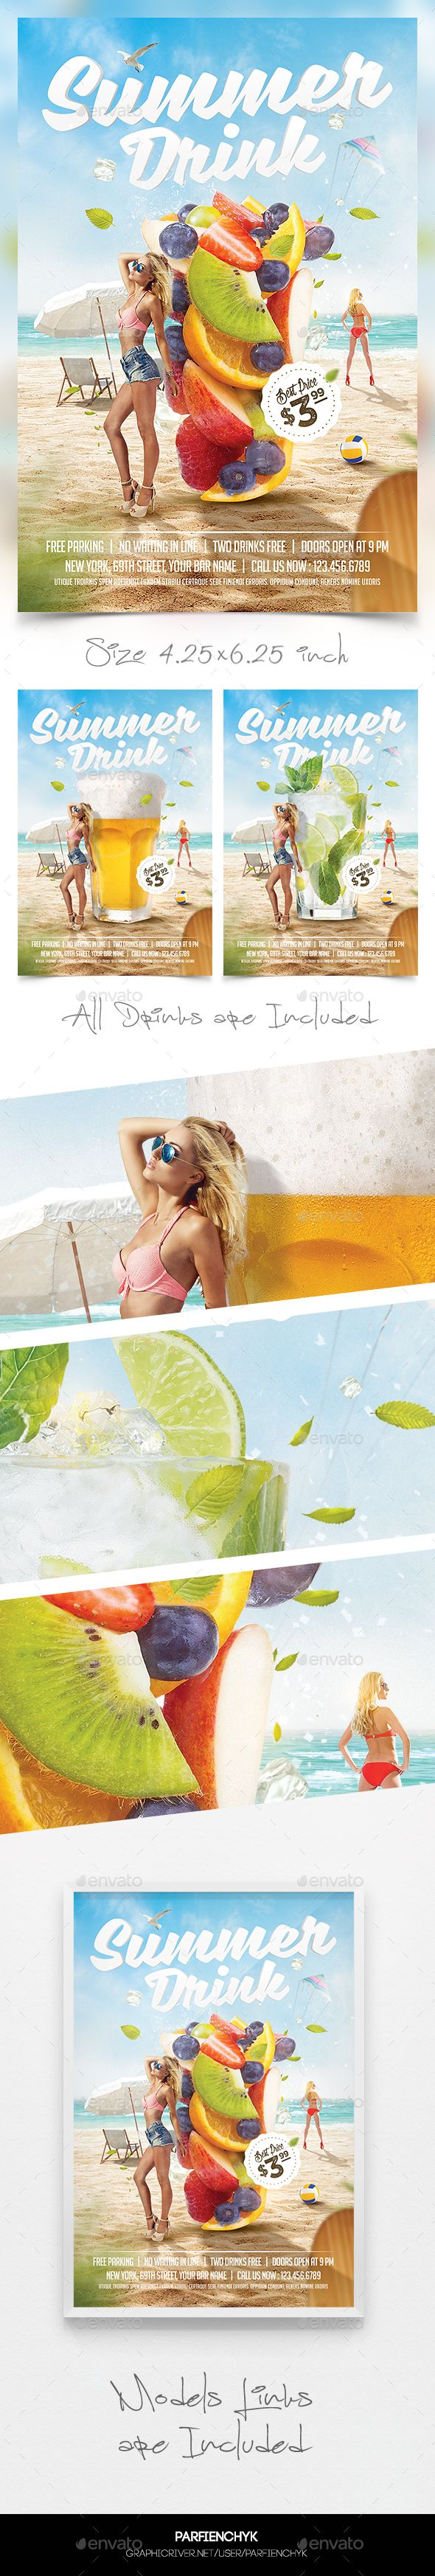 3in1 Summer Drinks Flyer Template